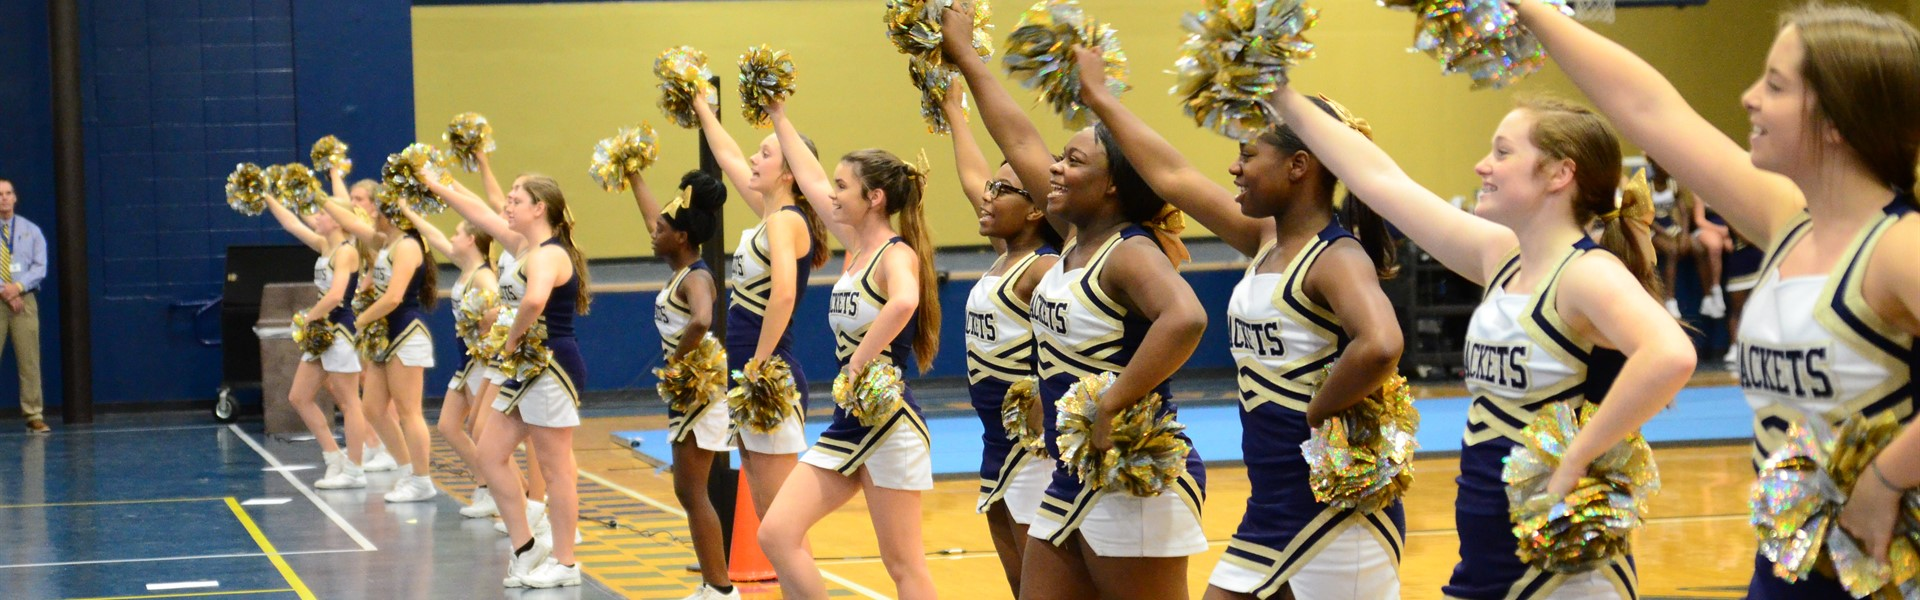 TCCHS cheerleaders